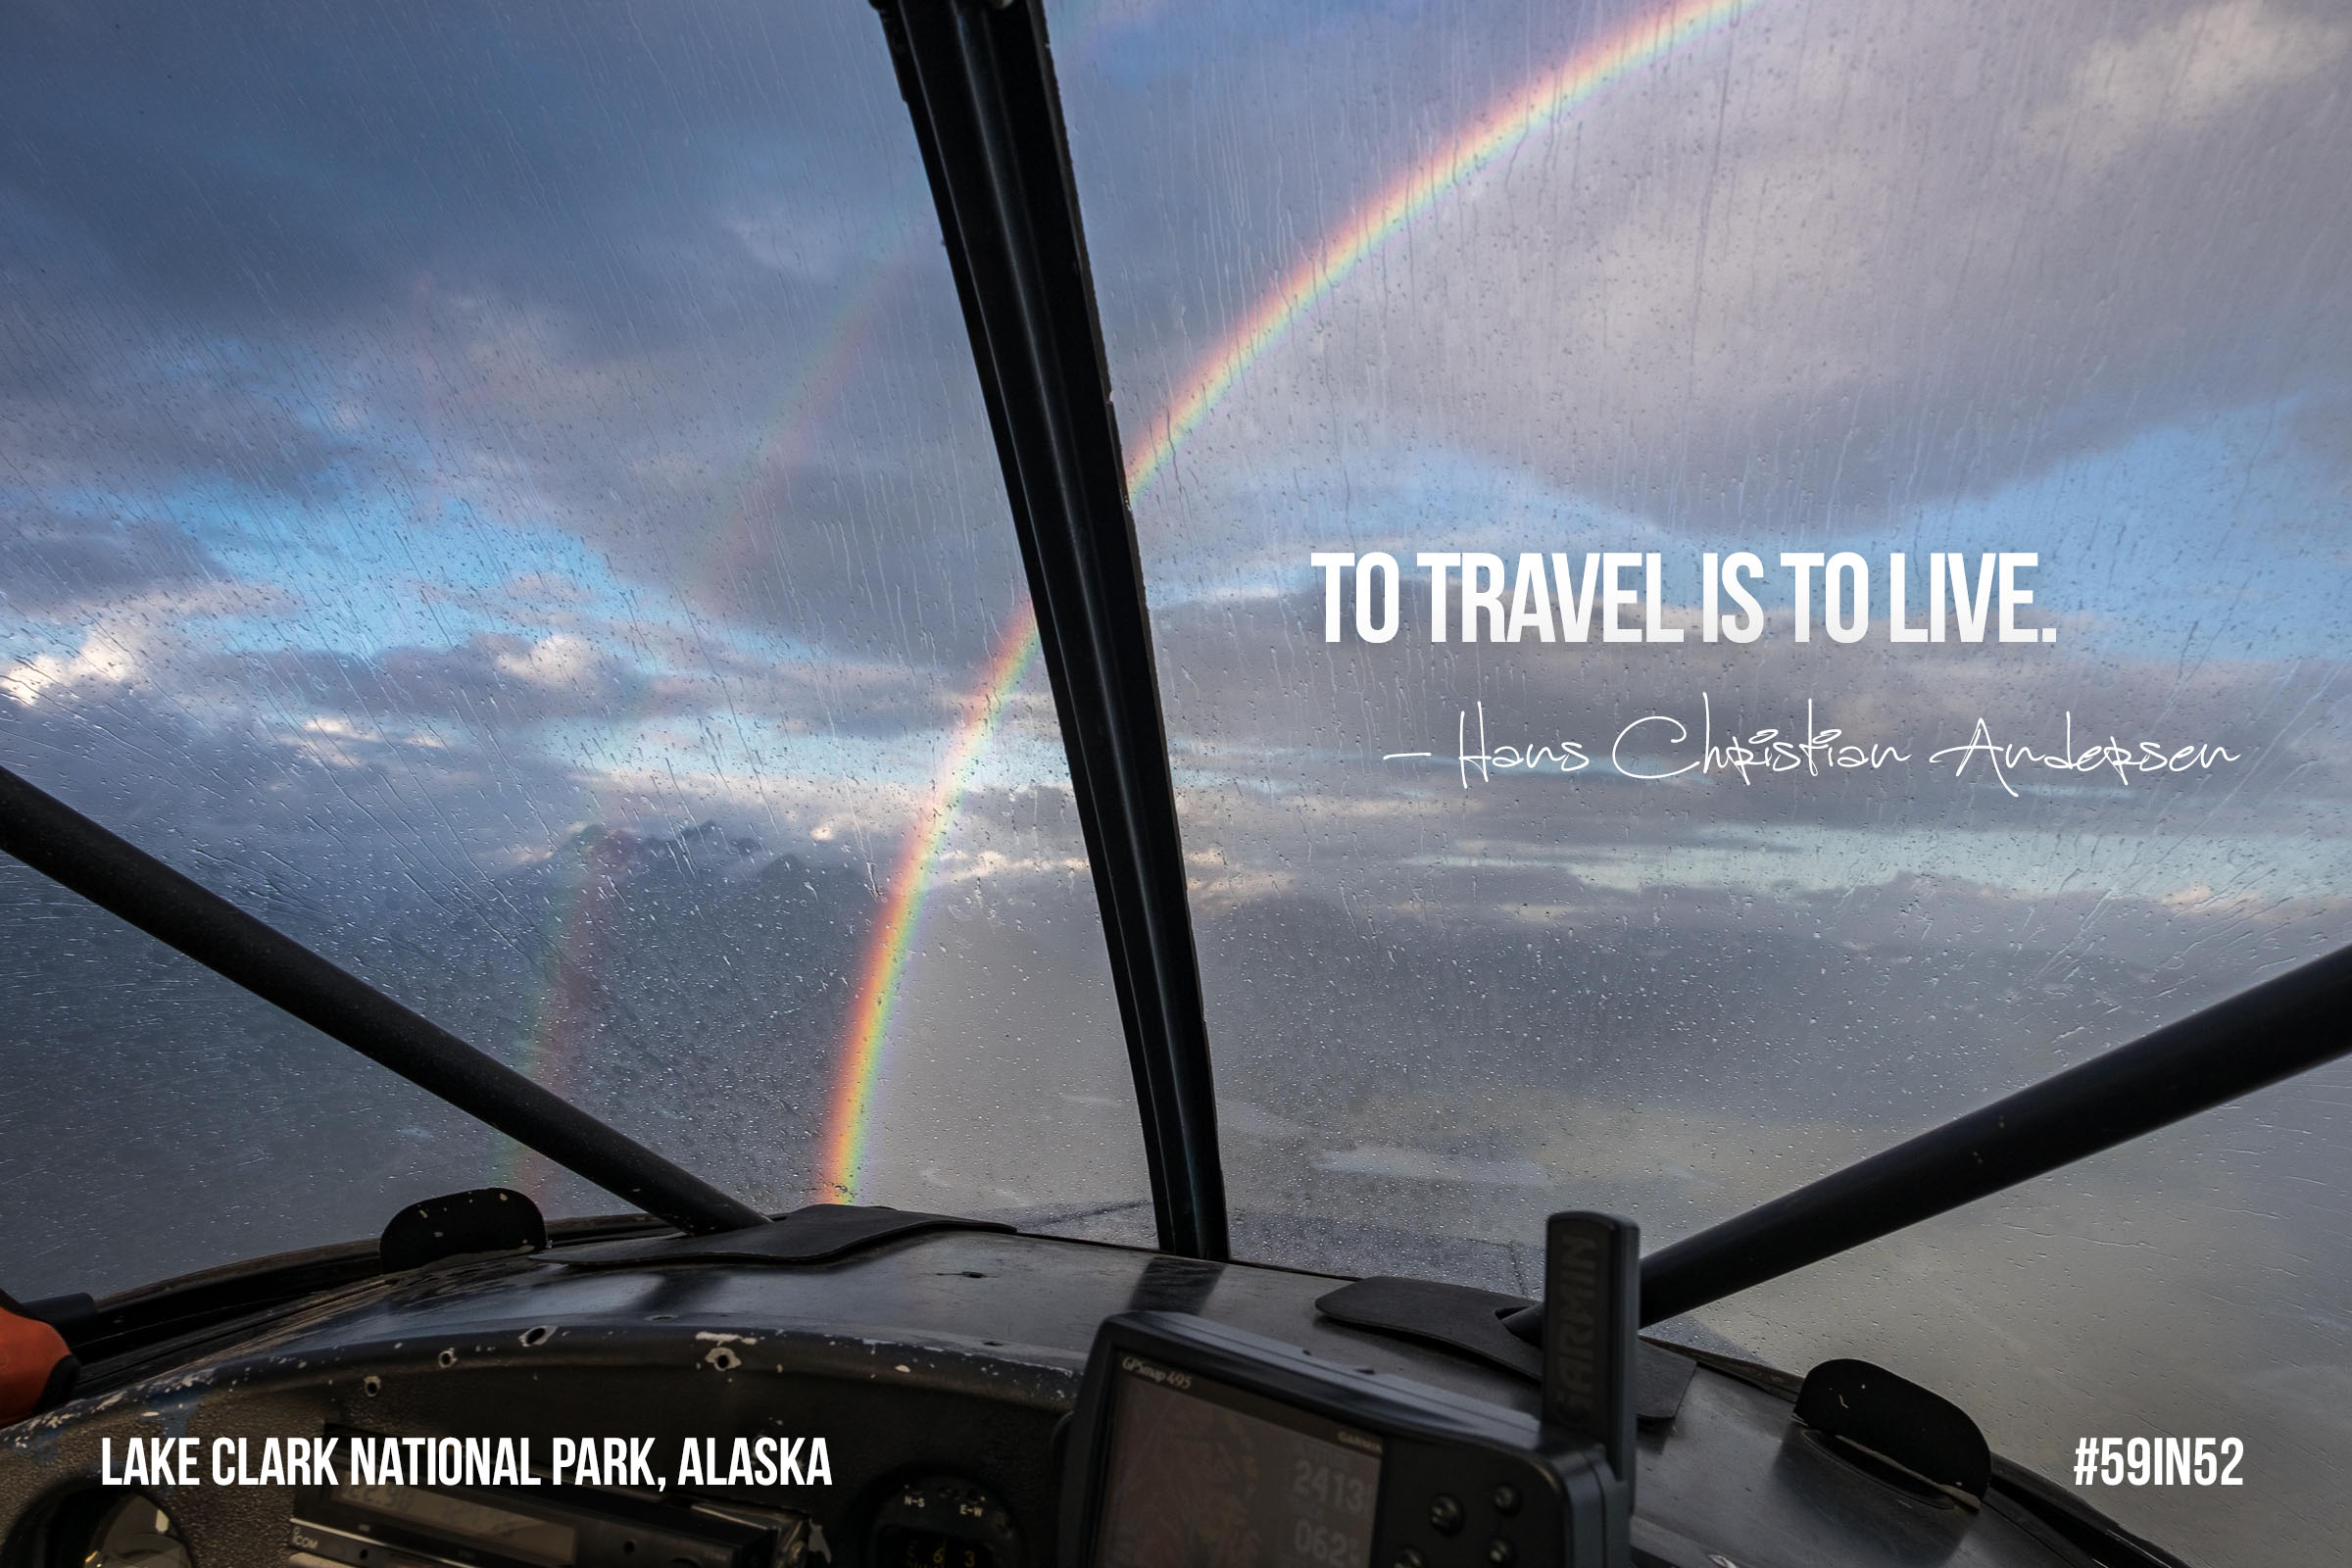 """To travel is to live."" - Hand Christian Anderson"